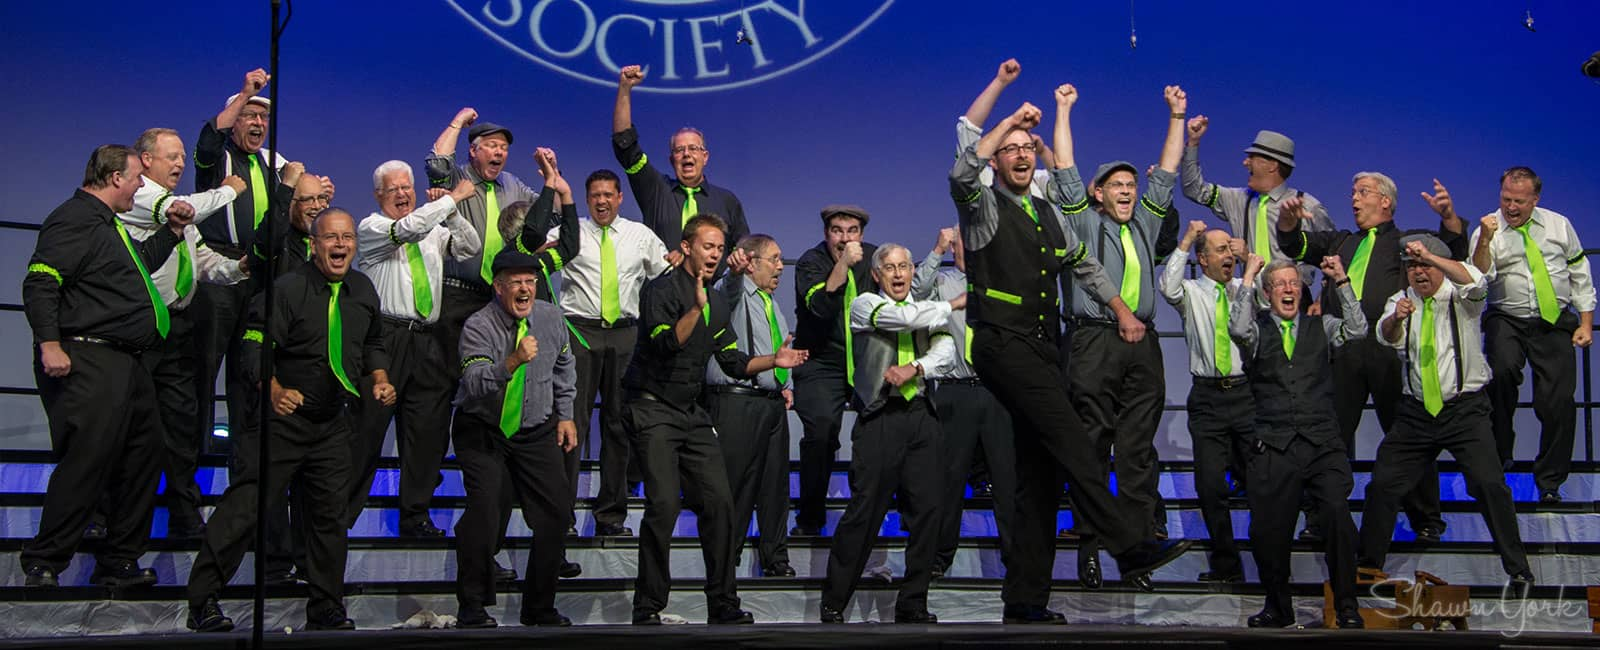 MountainTown Singers